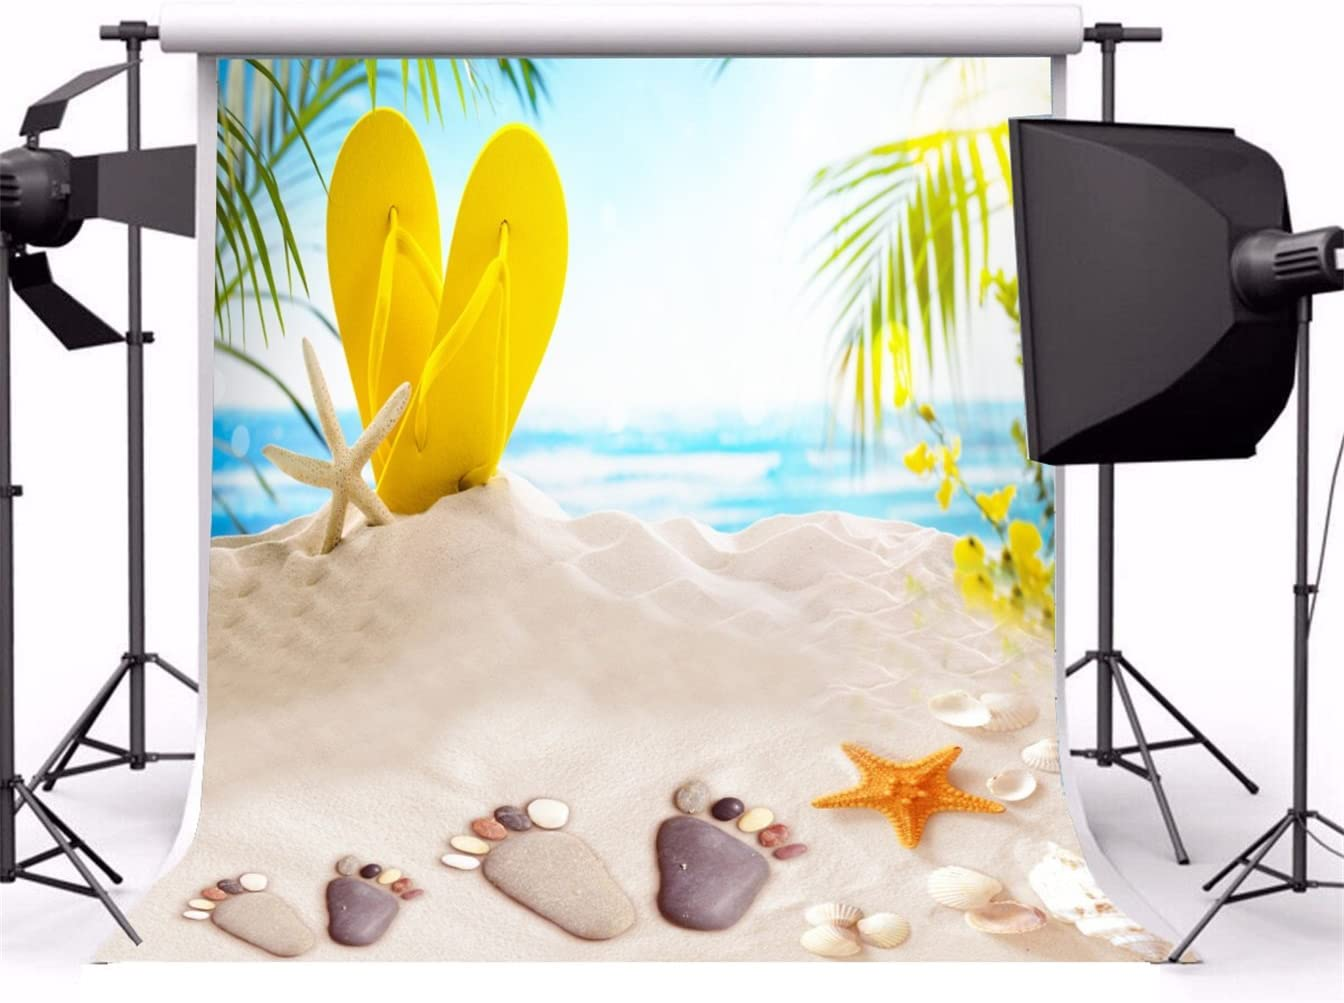 10x15 FT Photo Backdrops,Starfish Hard Coral with Group of Damselfish Water Surface Caribbean Sea Colorful Background for Kid Baby Boy Girl Artistic Portrait Photo Shoot Studio Props Video Drape